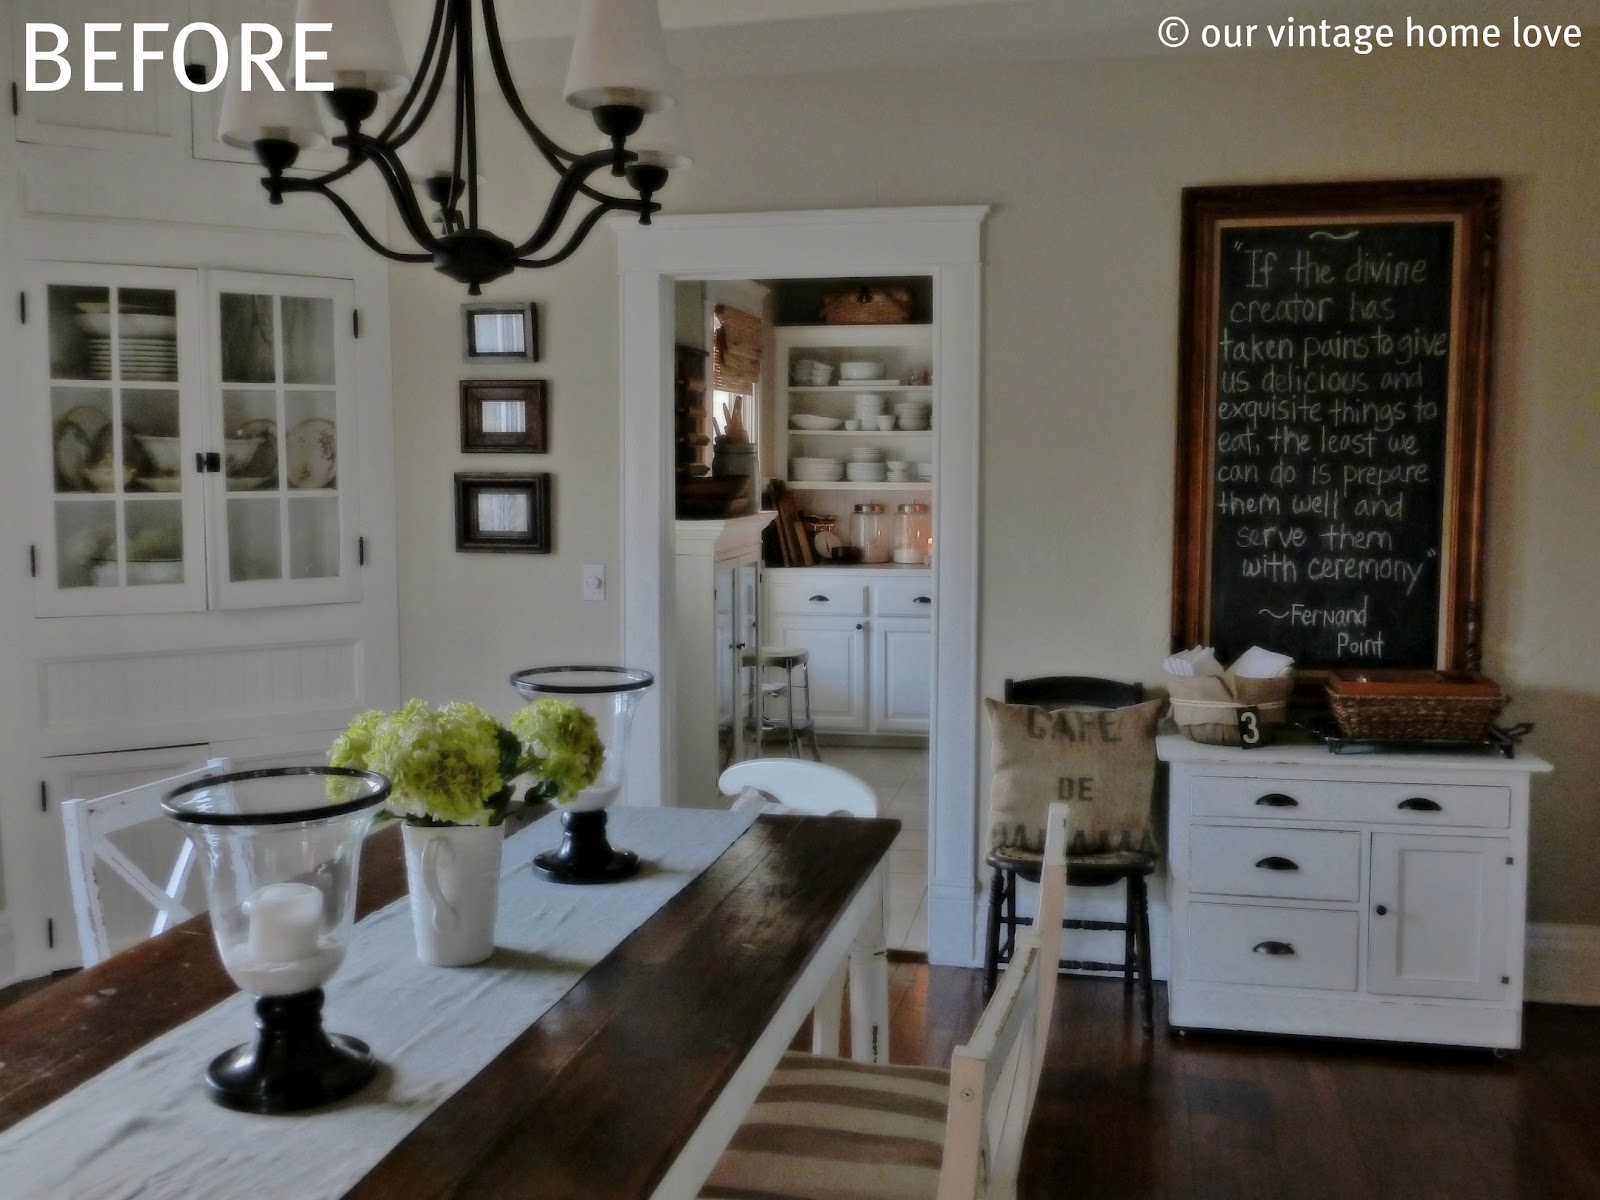 Vintage home love dining room table for Vintage style dining room ideas